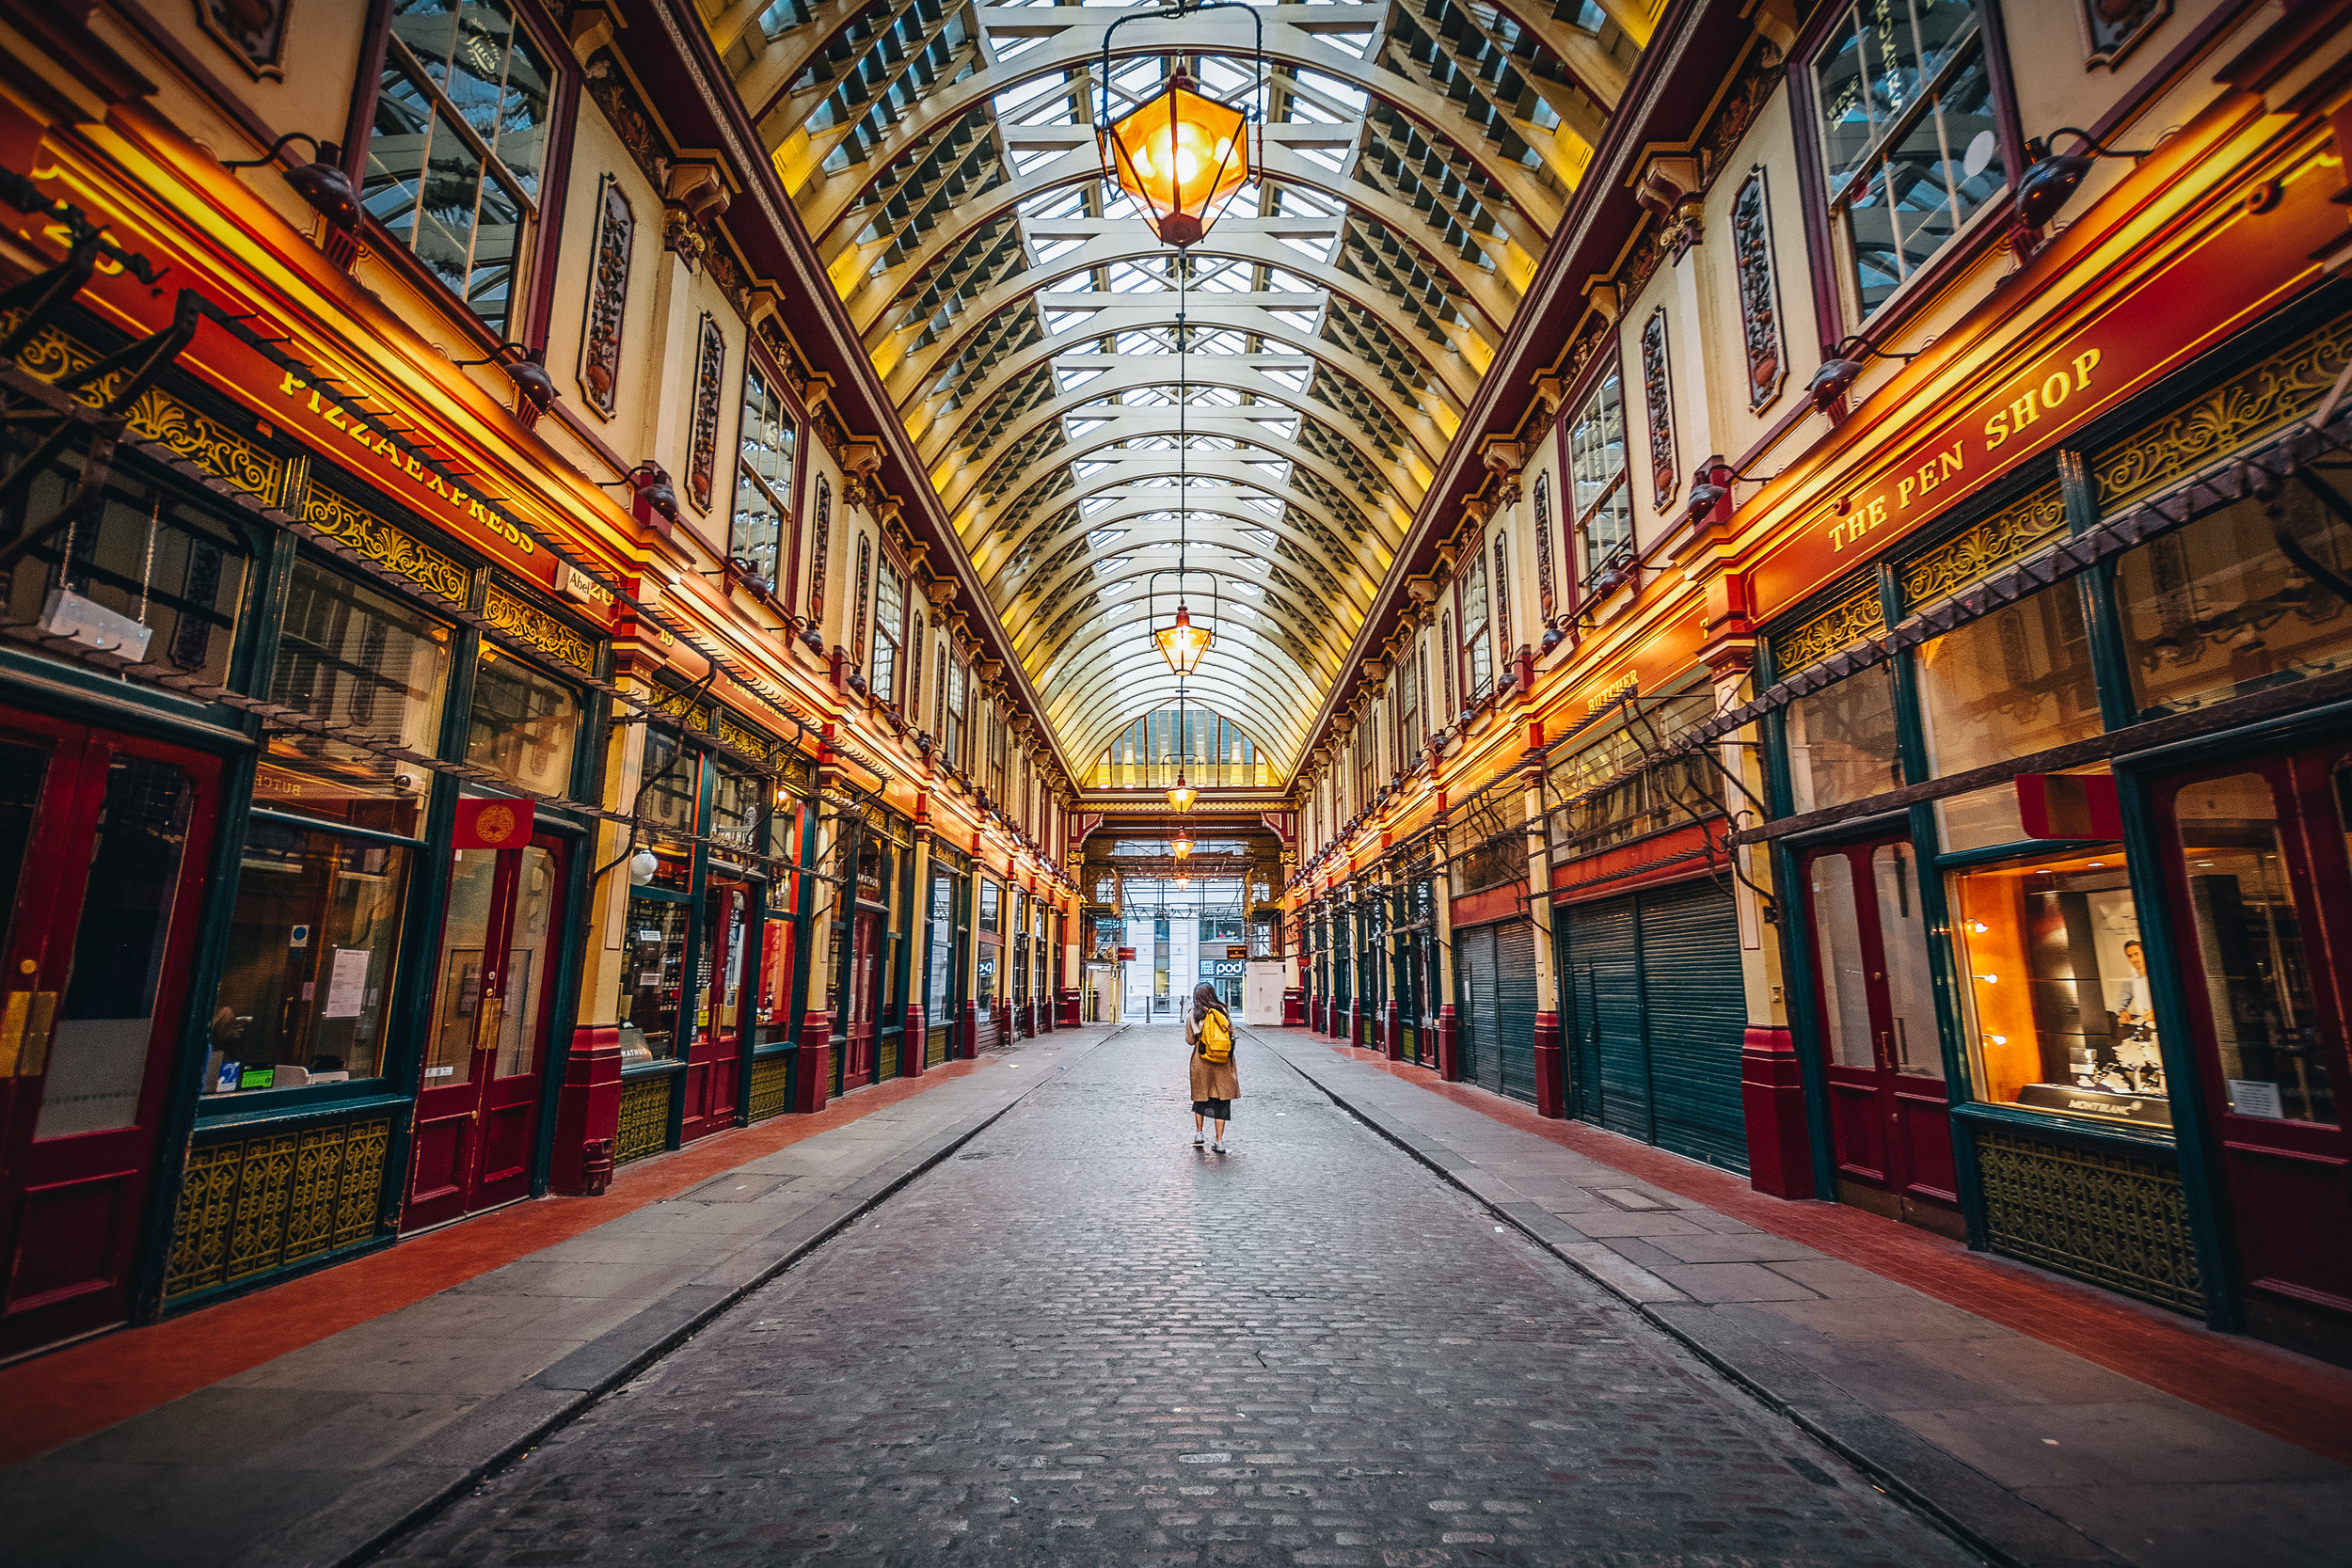 In my habit of ending up in places after they've closed, here is Leadenhall Market with a single tourist wandering the halls.